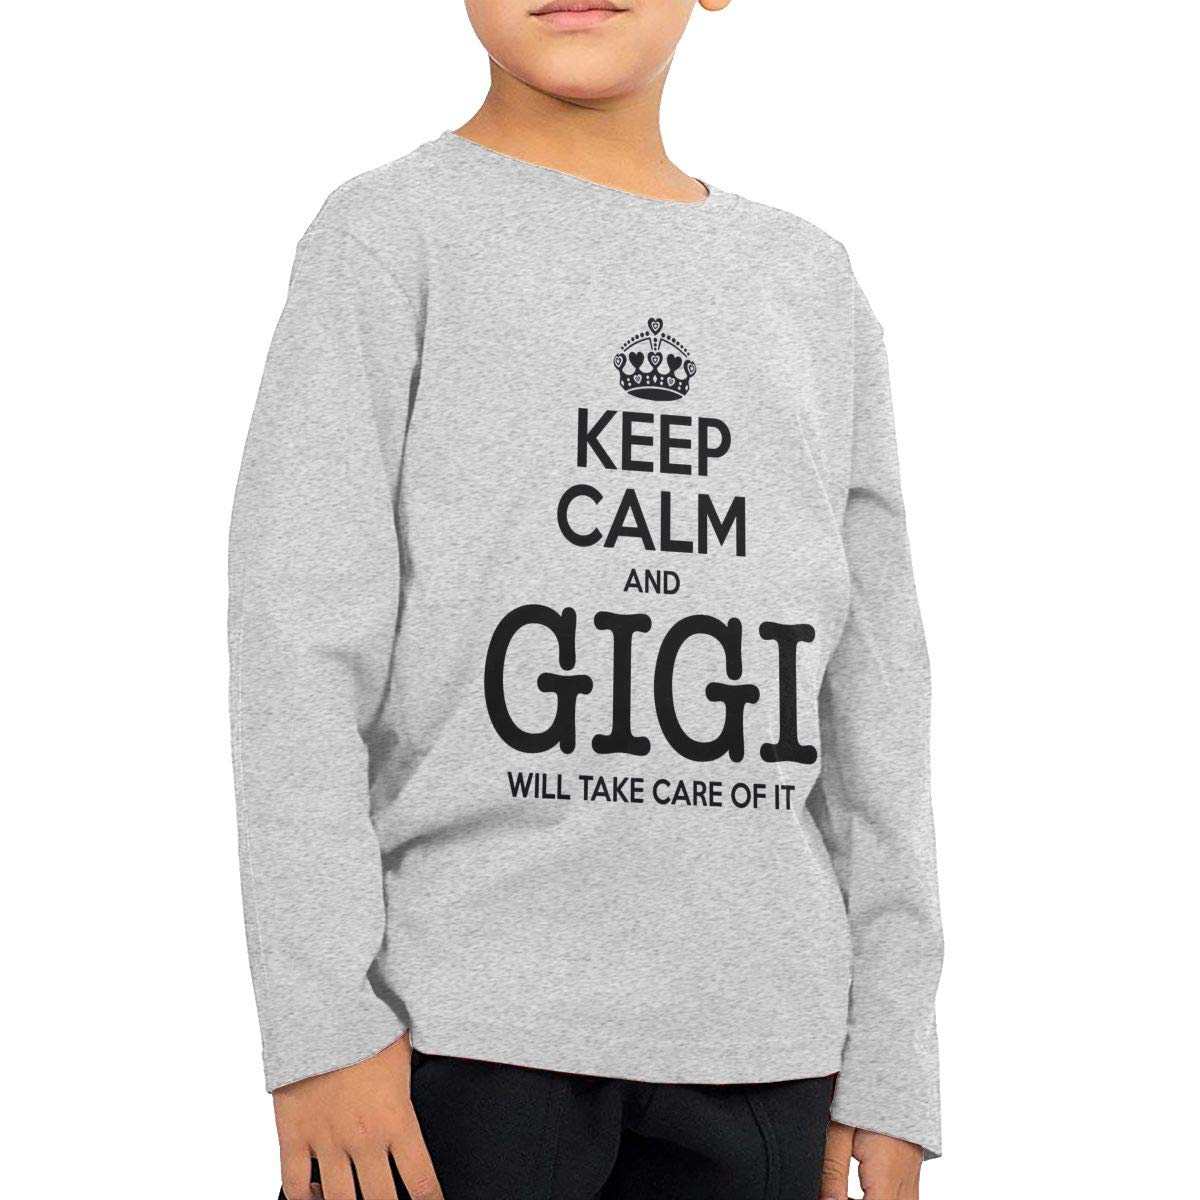 WCHUNMU Keep Calm Gigi Will Take Care of It Childrens Cotton Gray Long Sleeve Round Neck Boys Or Girls T Shirt